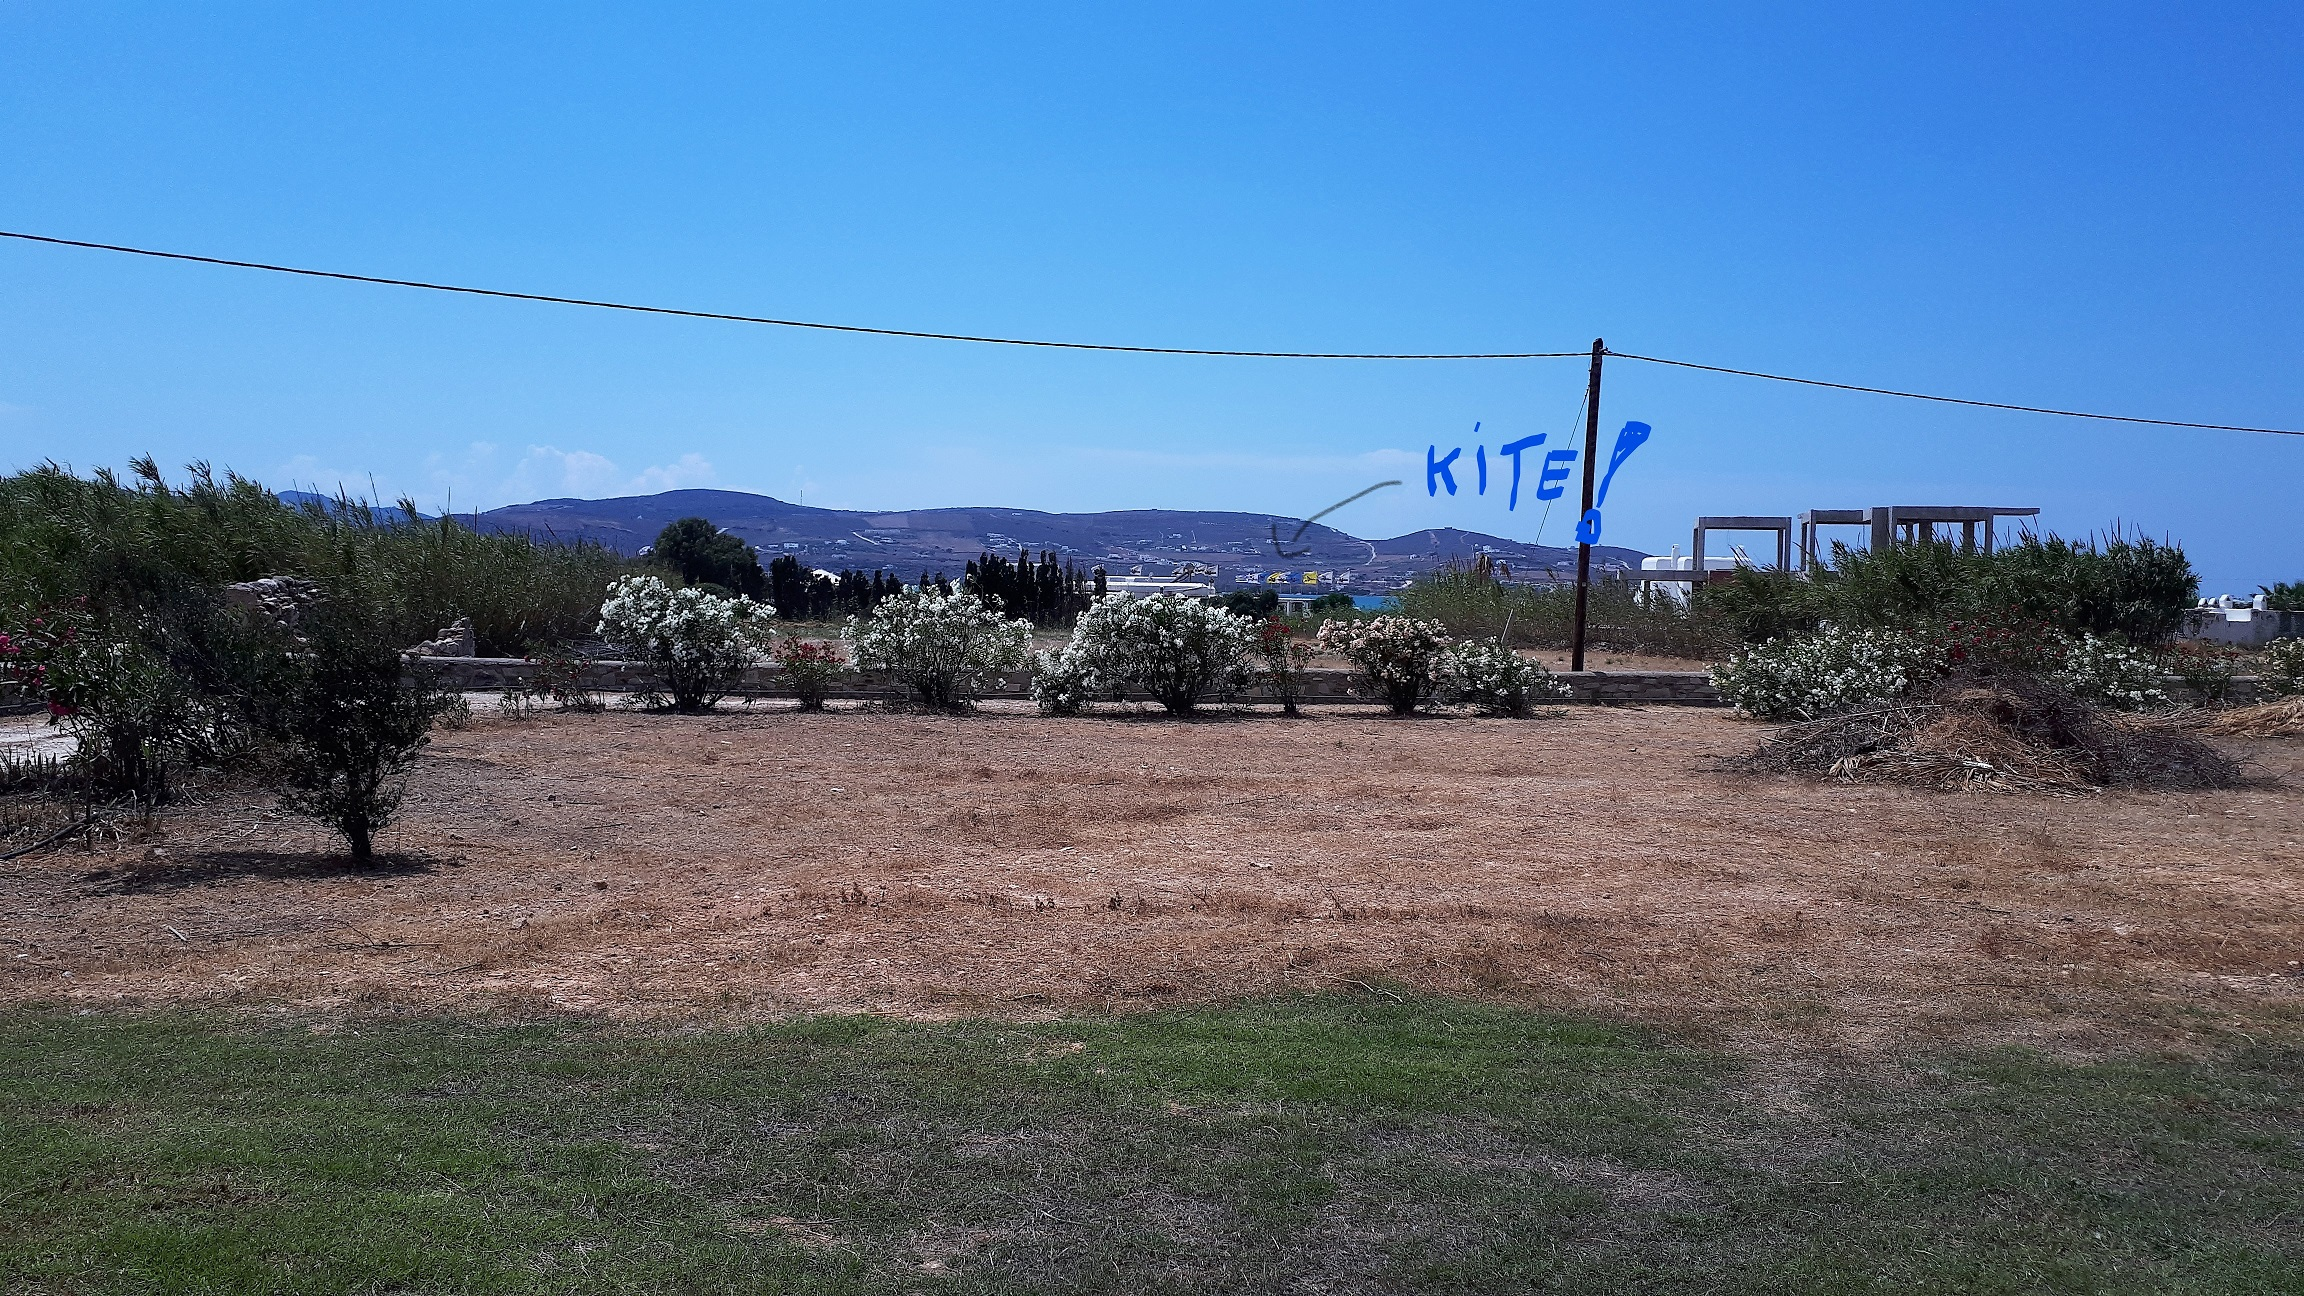 kite_there